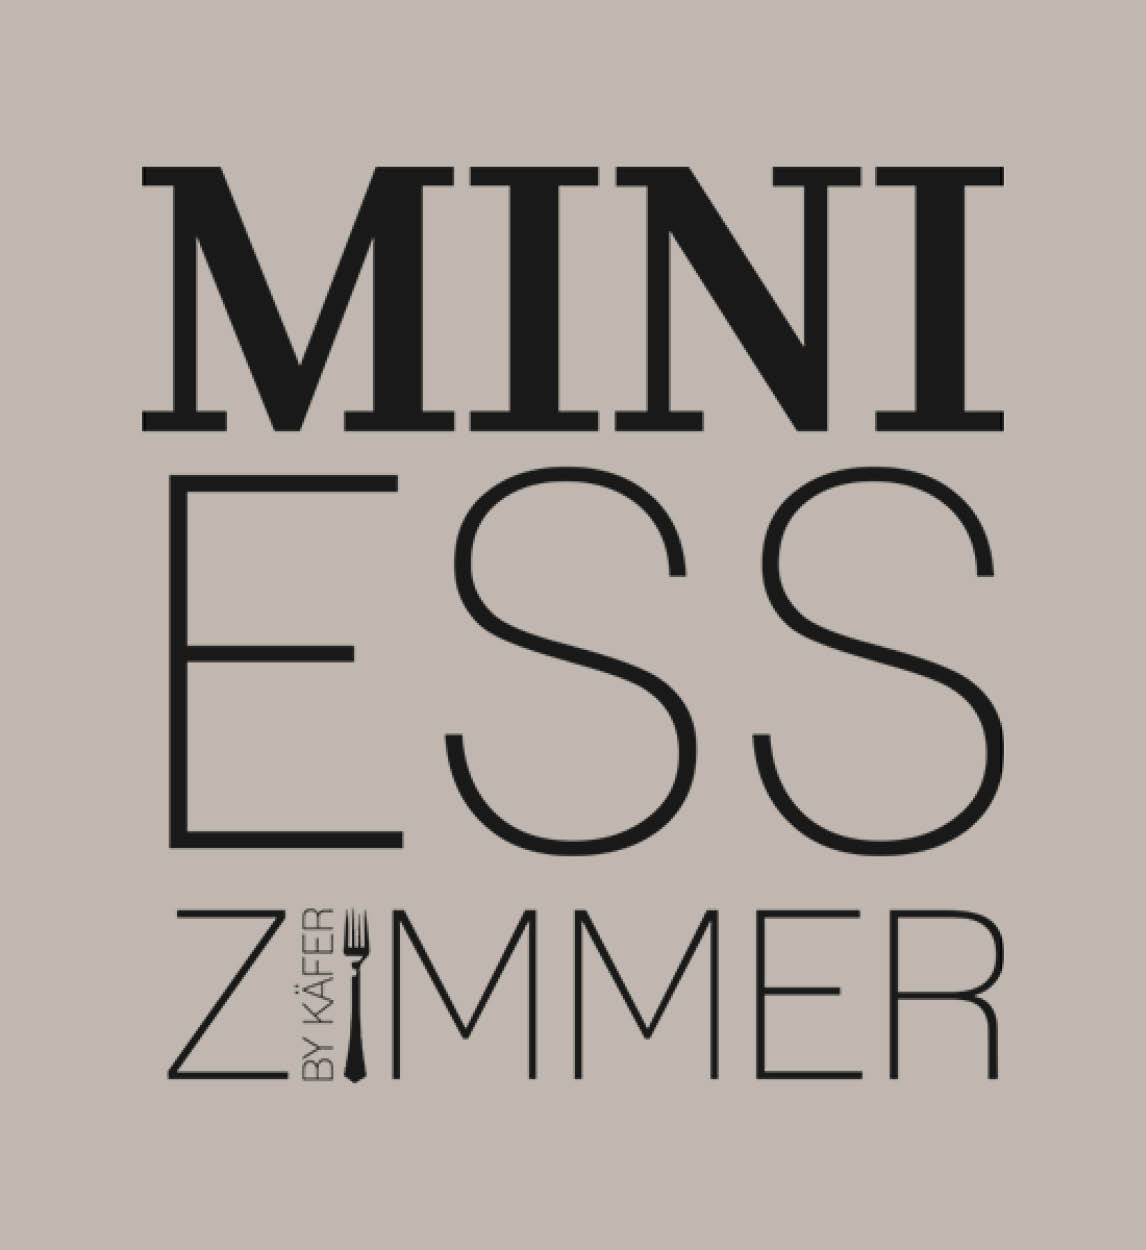 Mini EssZimmer by Käfer